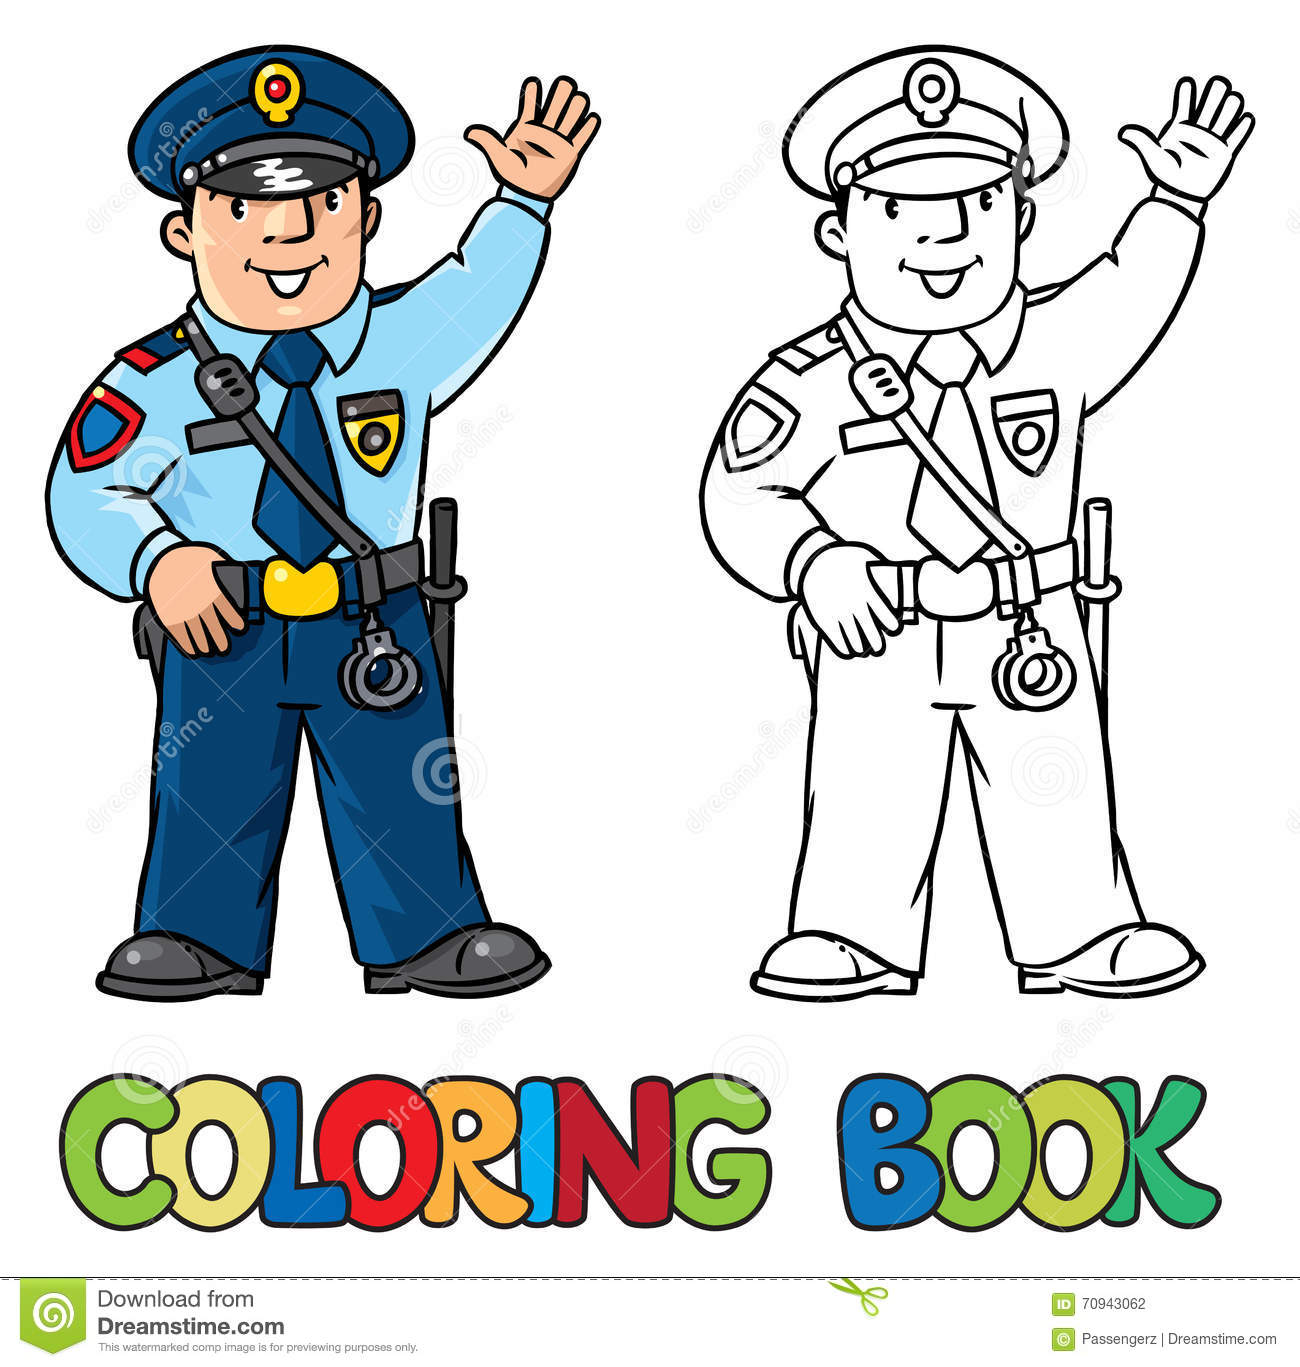 Awesome Police Coloring Books Gallery - New Coloring Pages ...